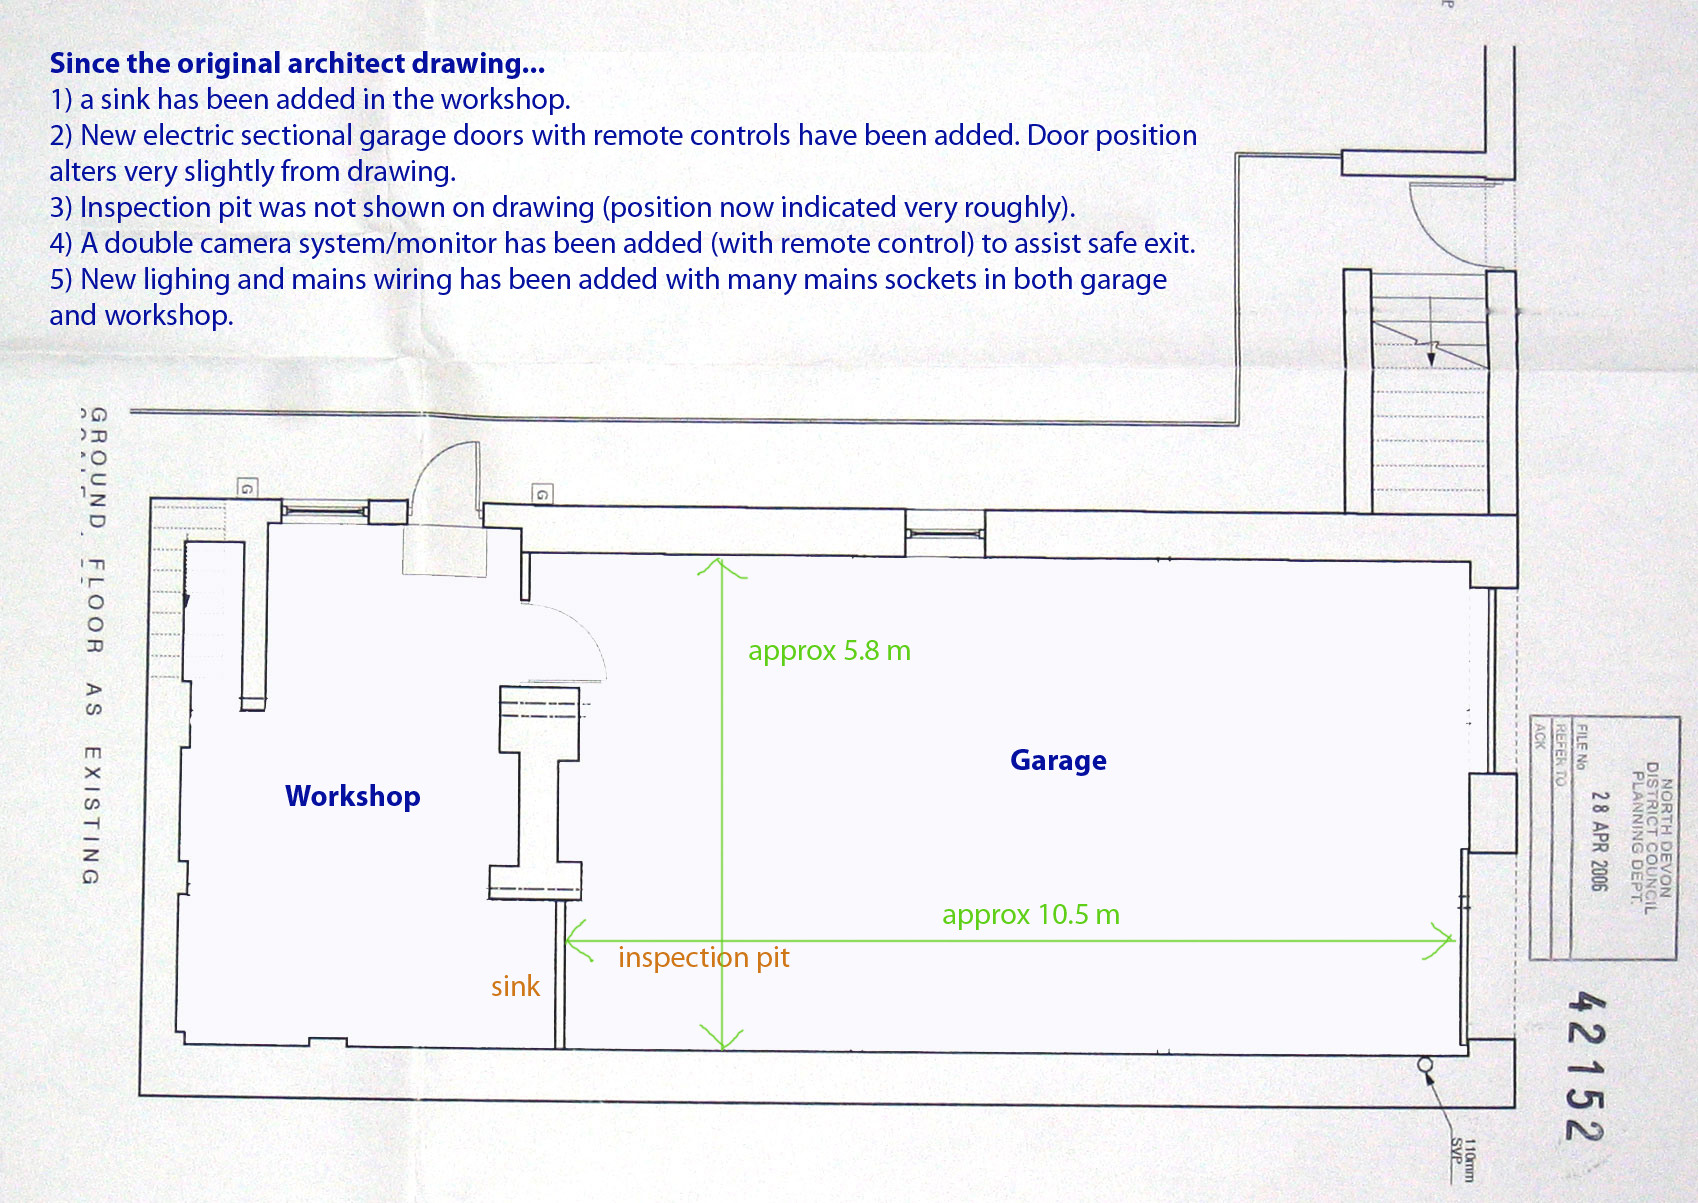 Beau geste Workshop garage plans